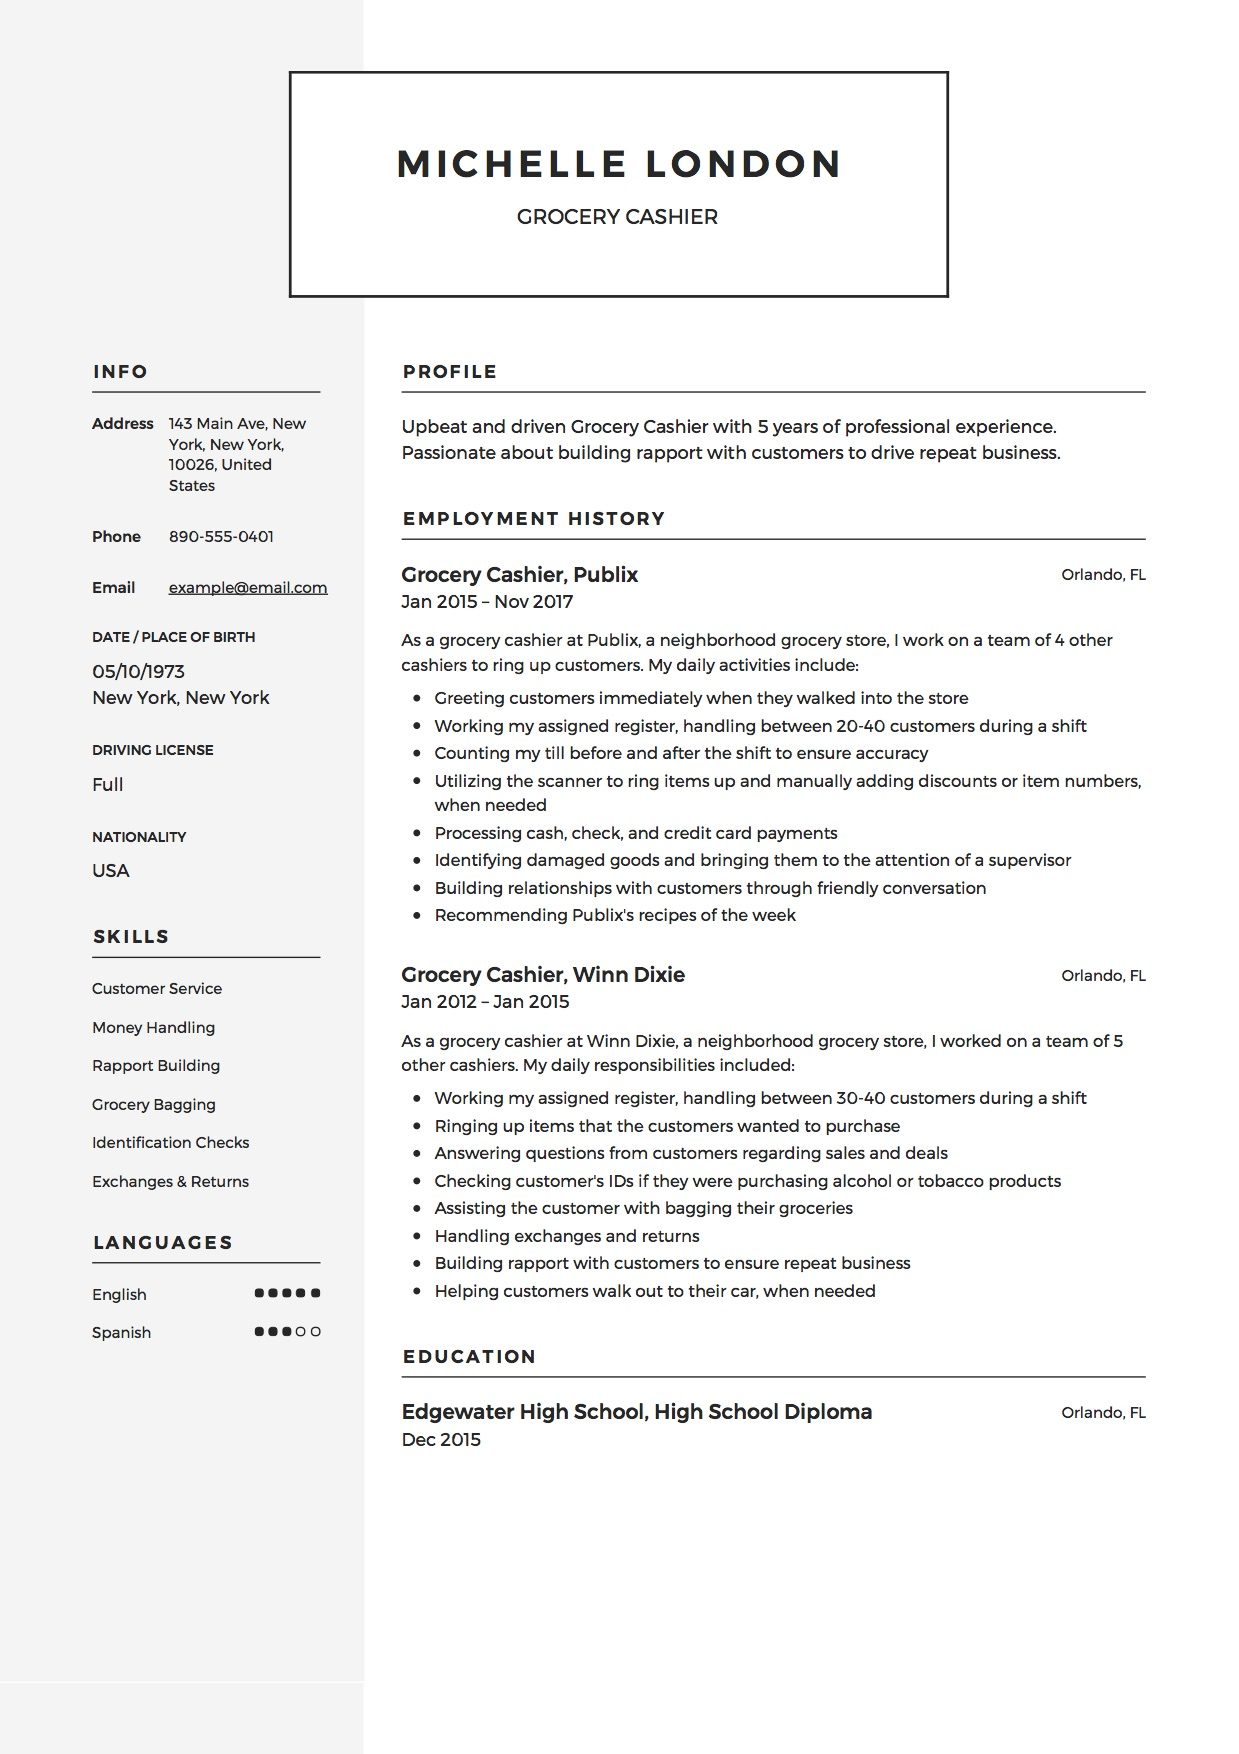 12 grocery cashier resume sample s